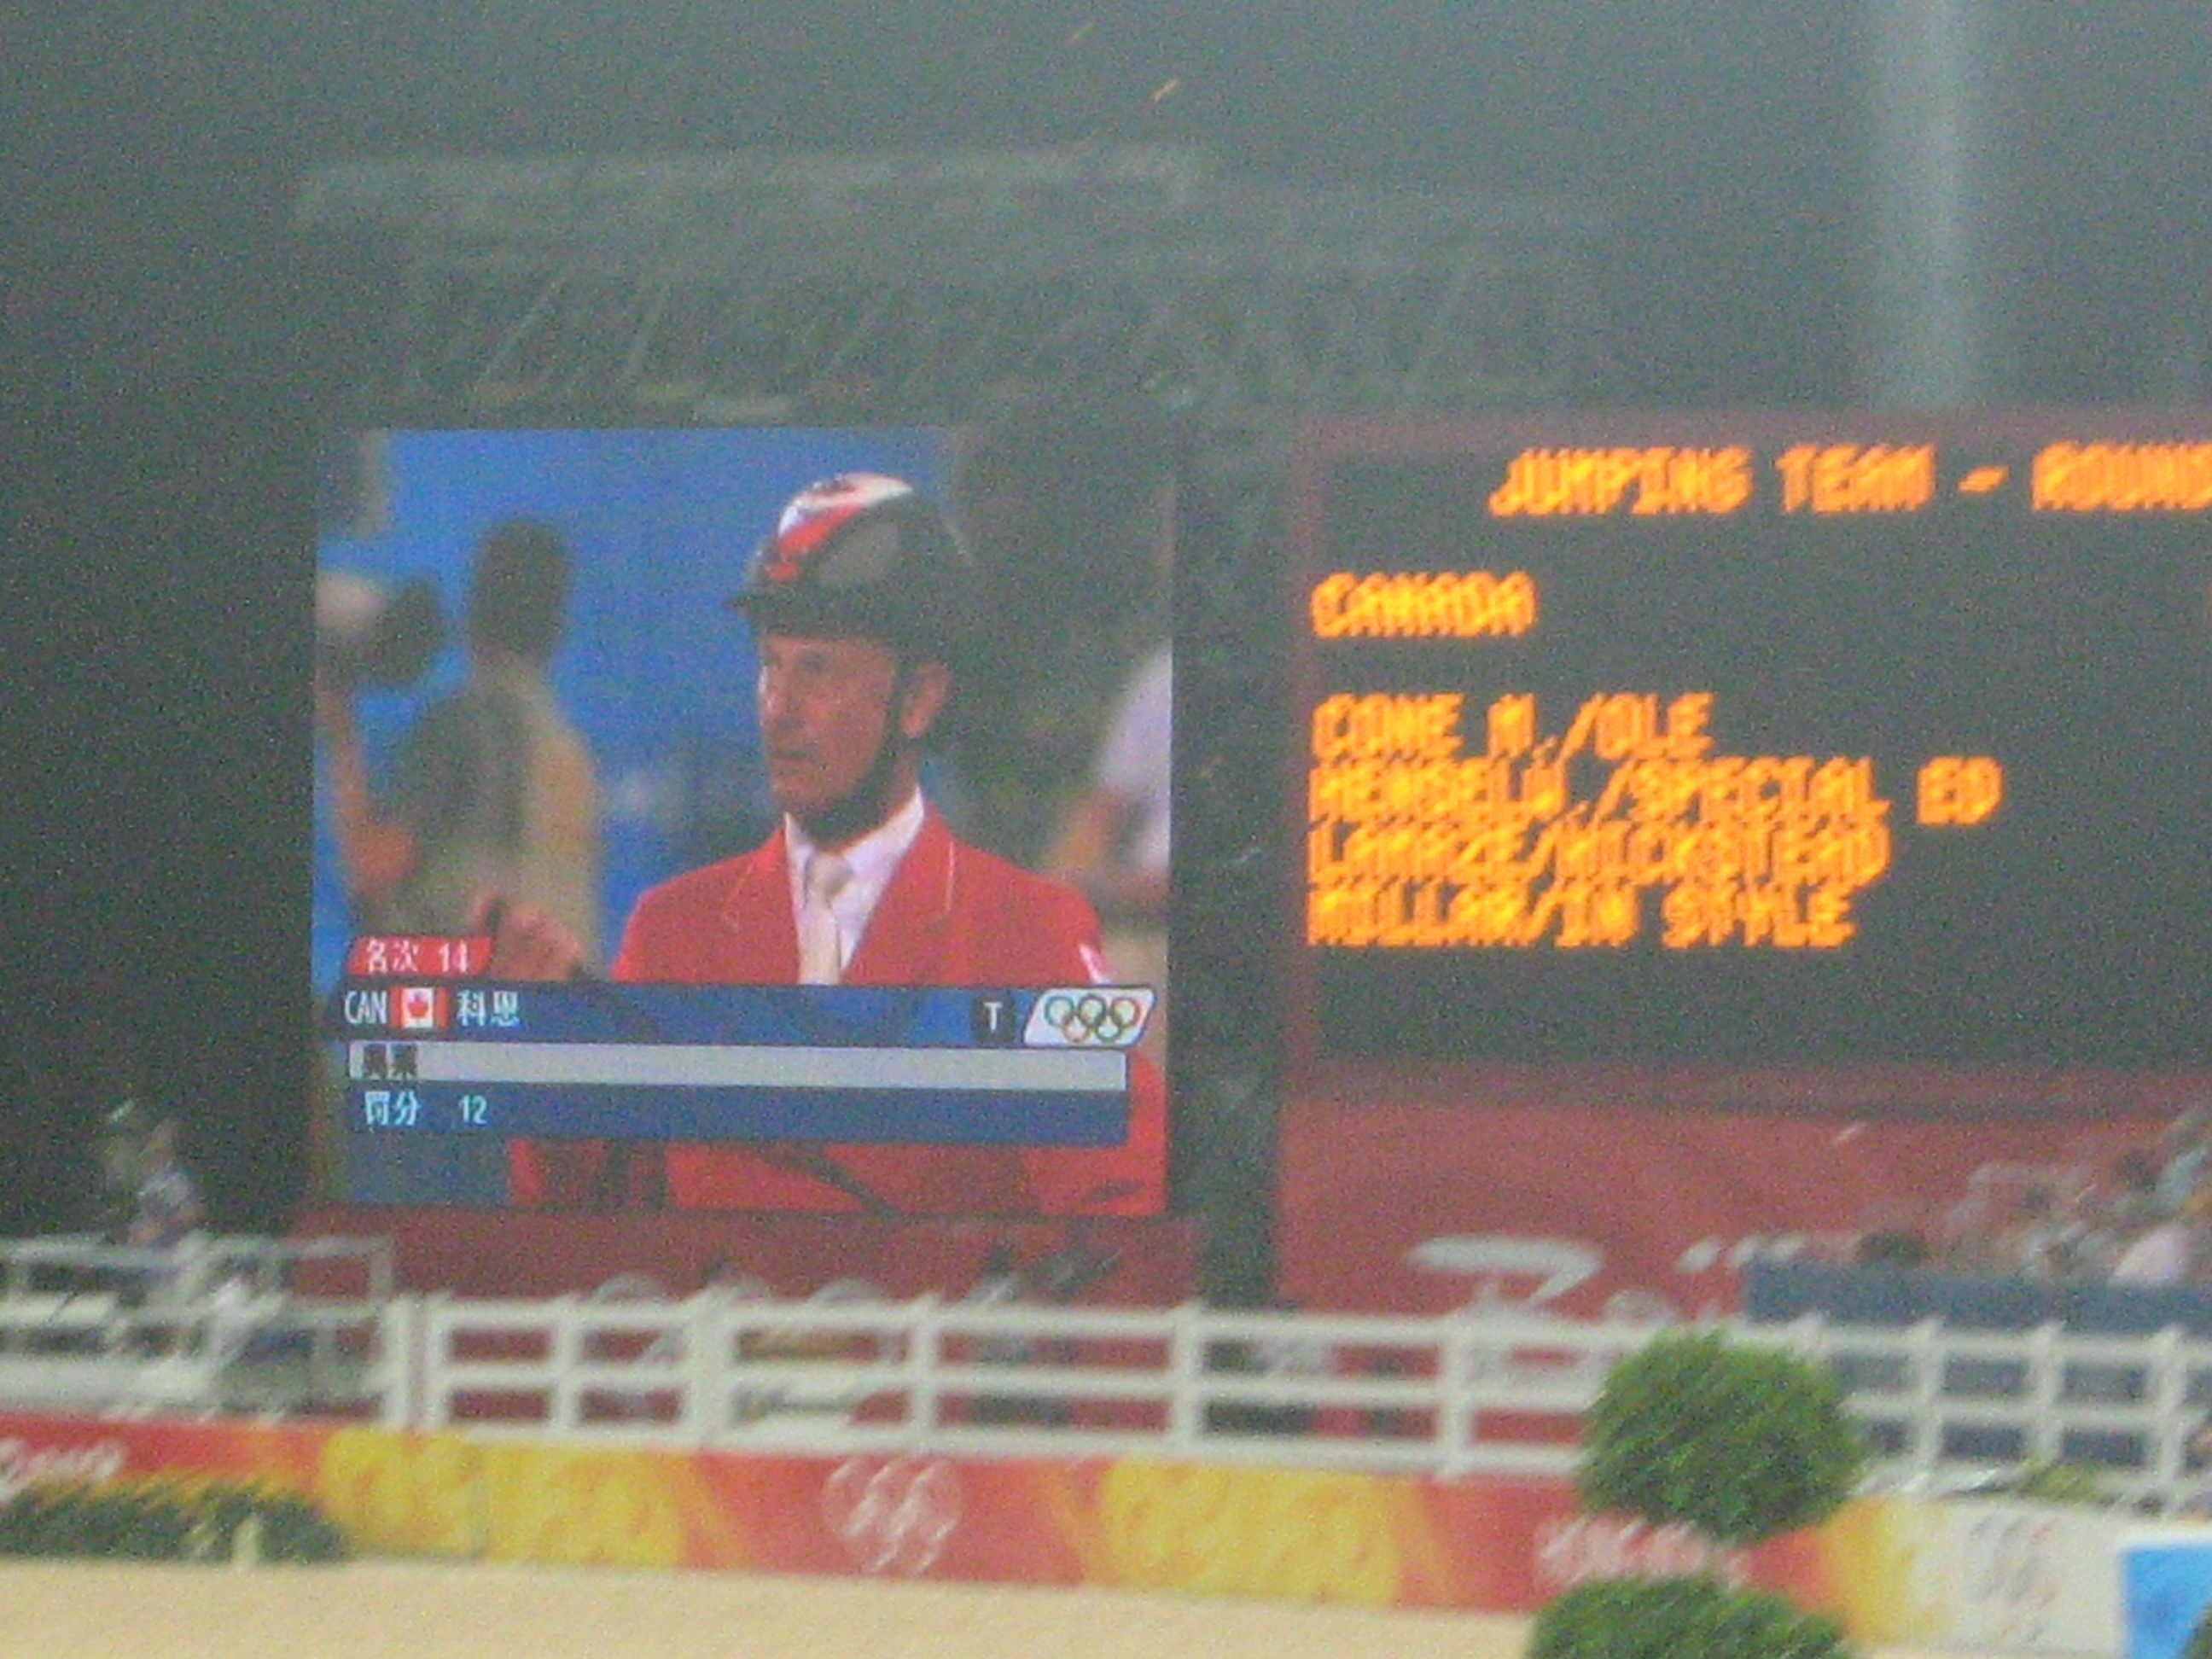 Mac Cone and Ole were the first Canadians on course and had an unfortunate 12 faults.